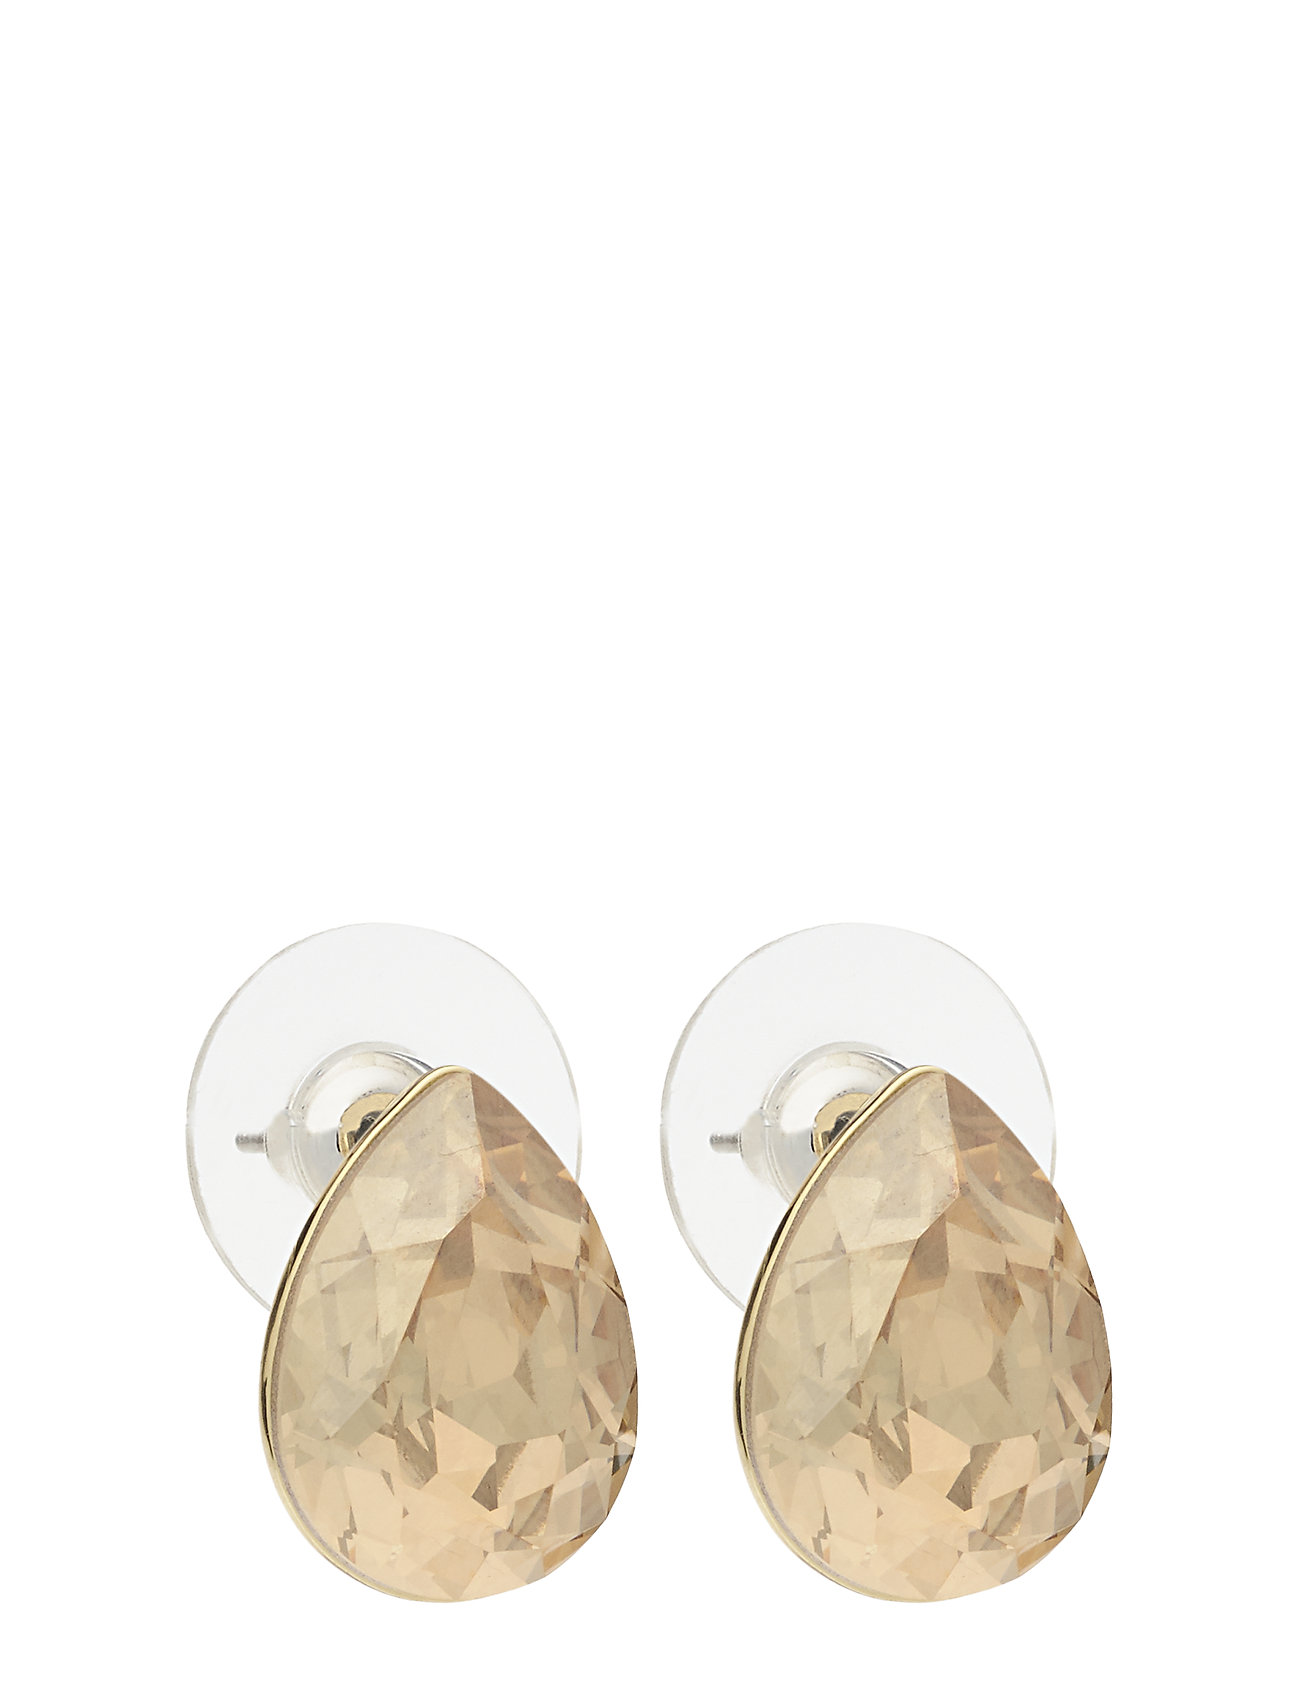 Image of West Broadway Ear Accessories Jewellery Earrings Studs Guld SNÖ Of Sweden (3270672875)